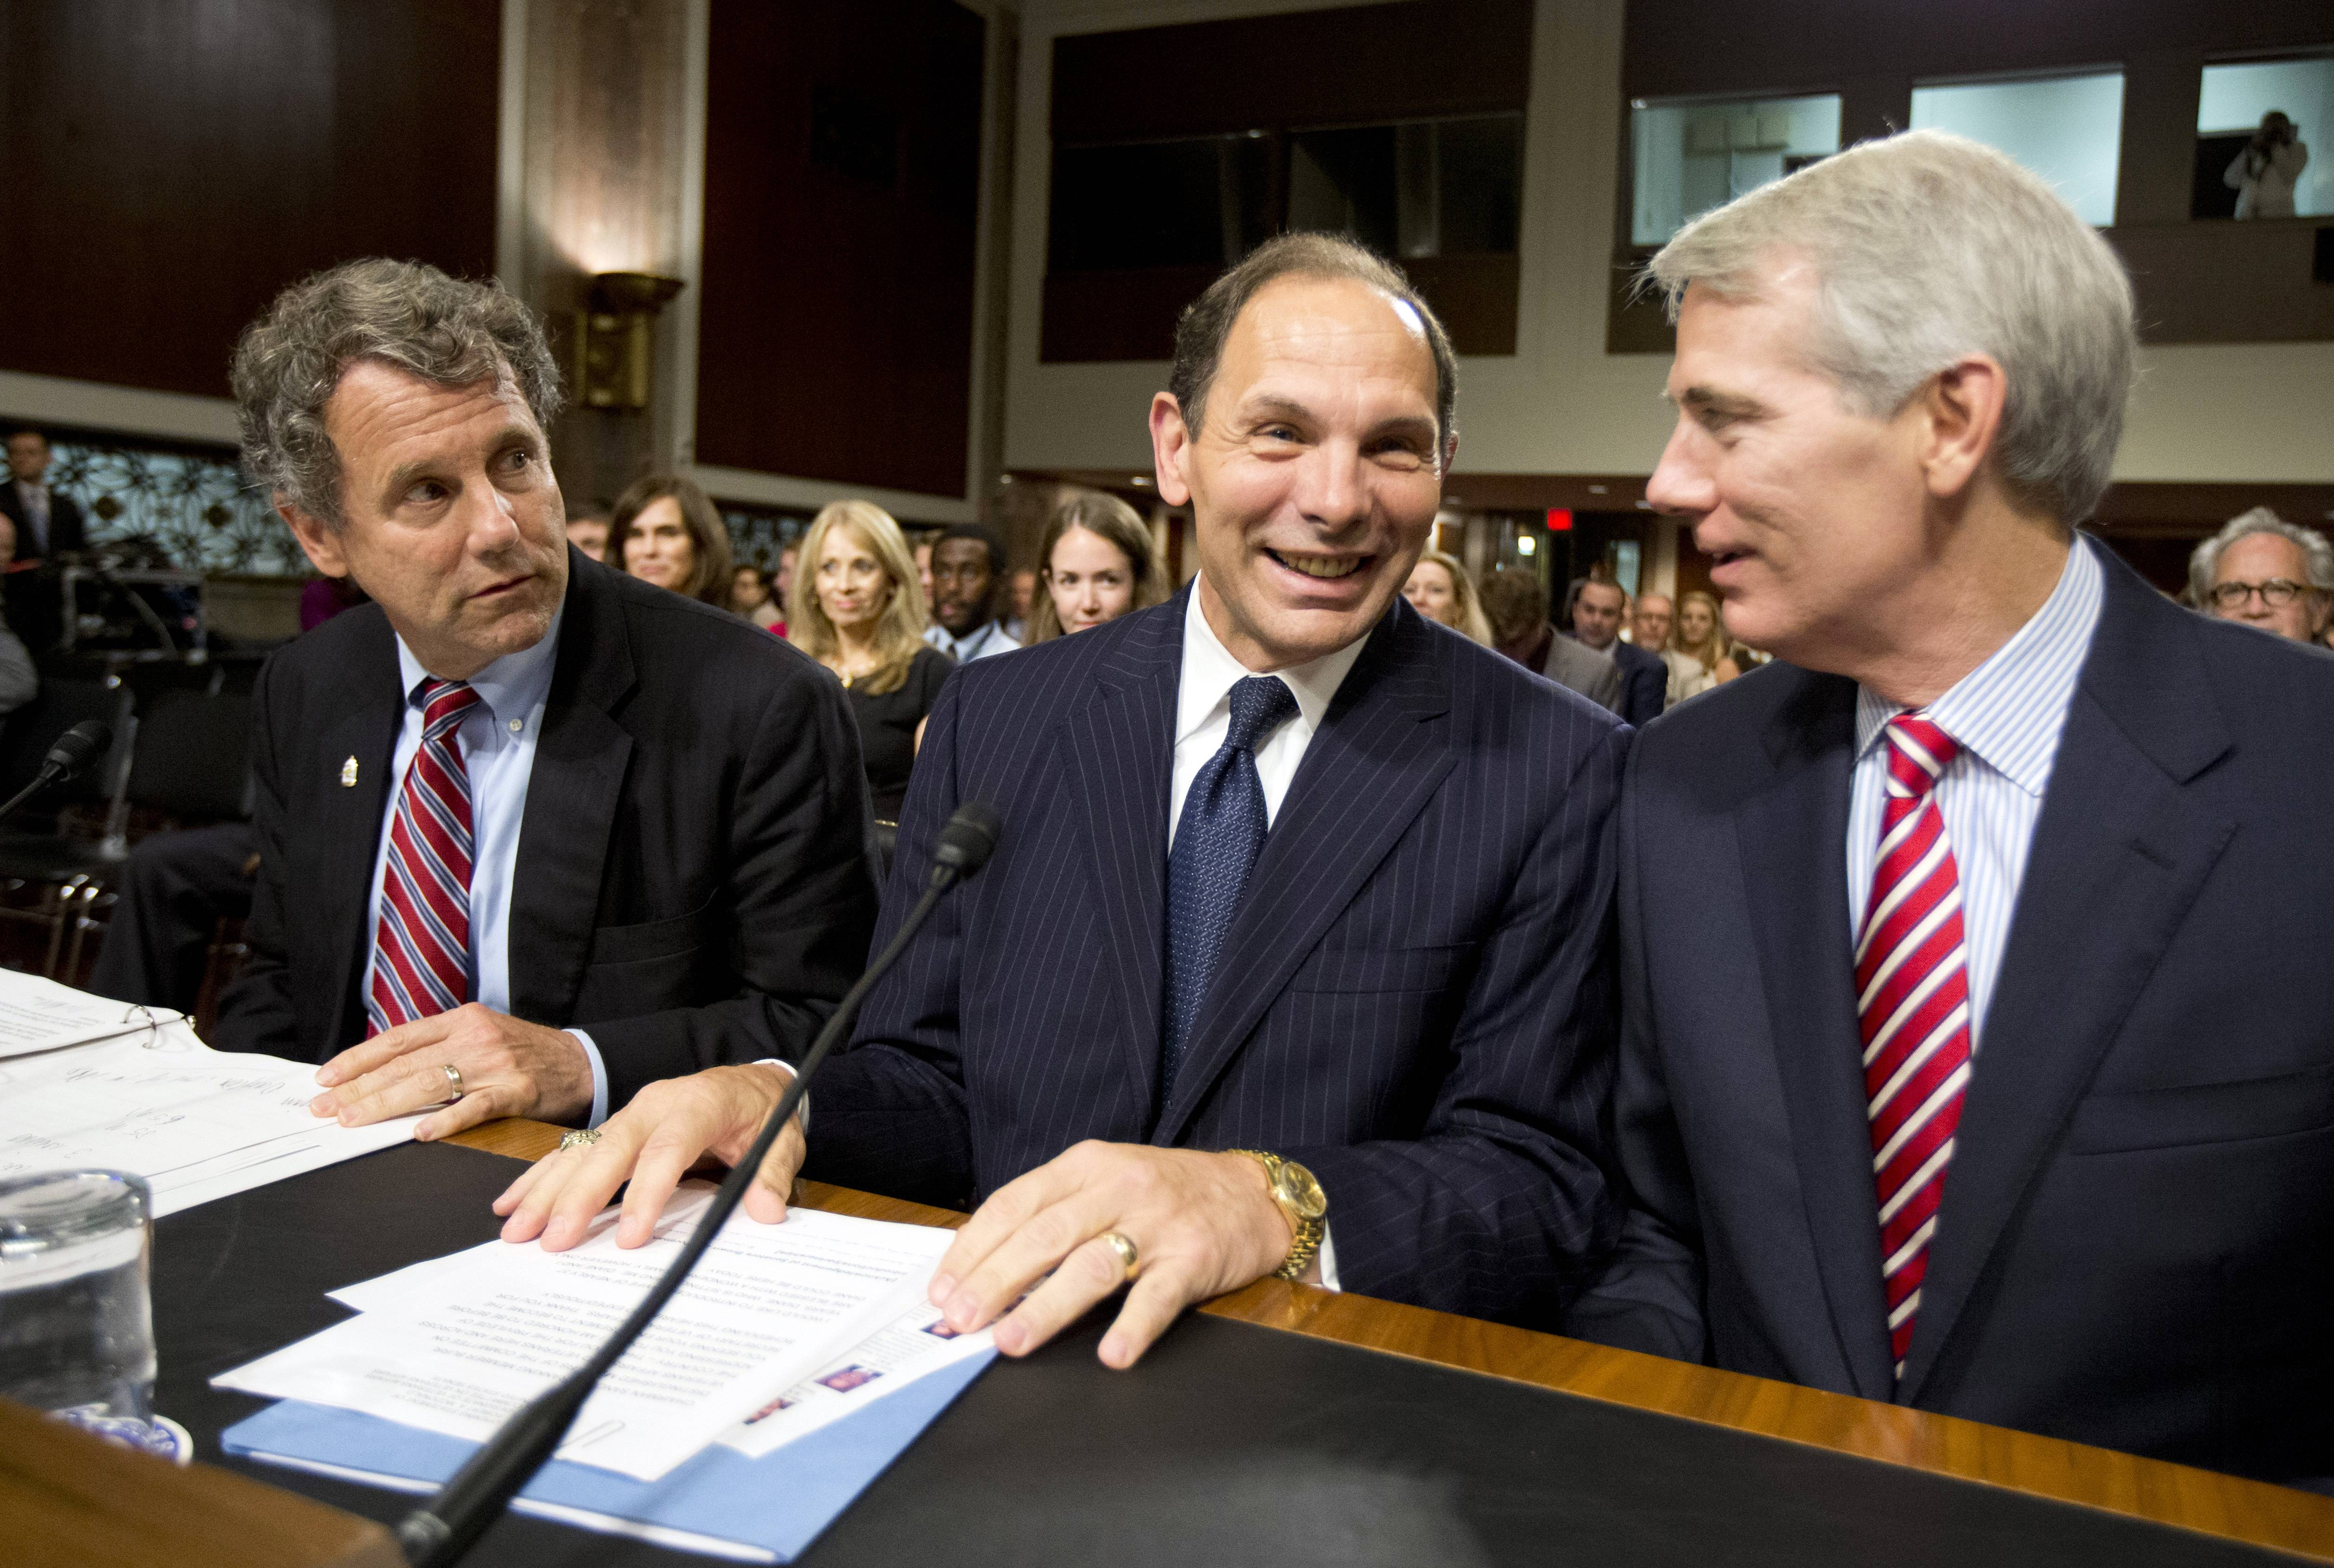 The Senate Veterans' Affairs Committee unanimously endorsed former Procter & Gamble CEO Robert McDonald to be the new secretary of Veterans Affairs Wednesday. McDonald is seen here during his confirmation hearing Tuesday, flanked by Sens. Sherrod Brown, left, and Rob Portman, right.